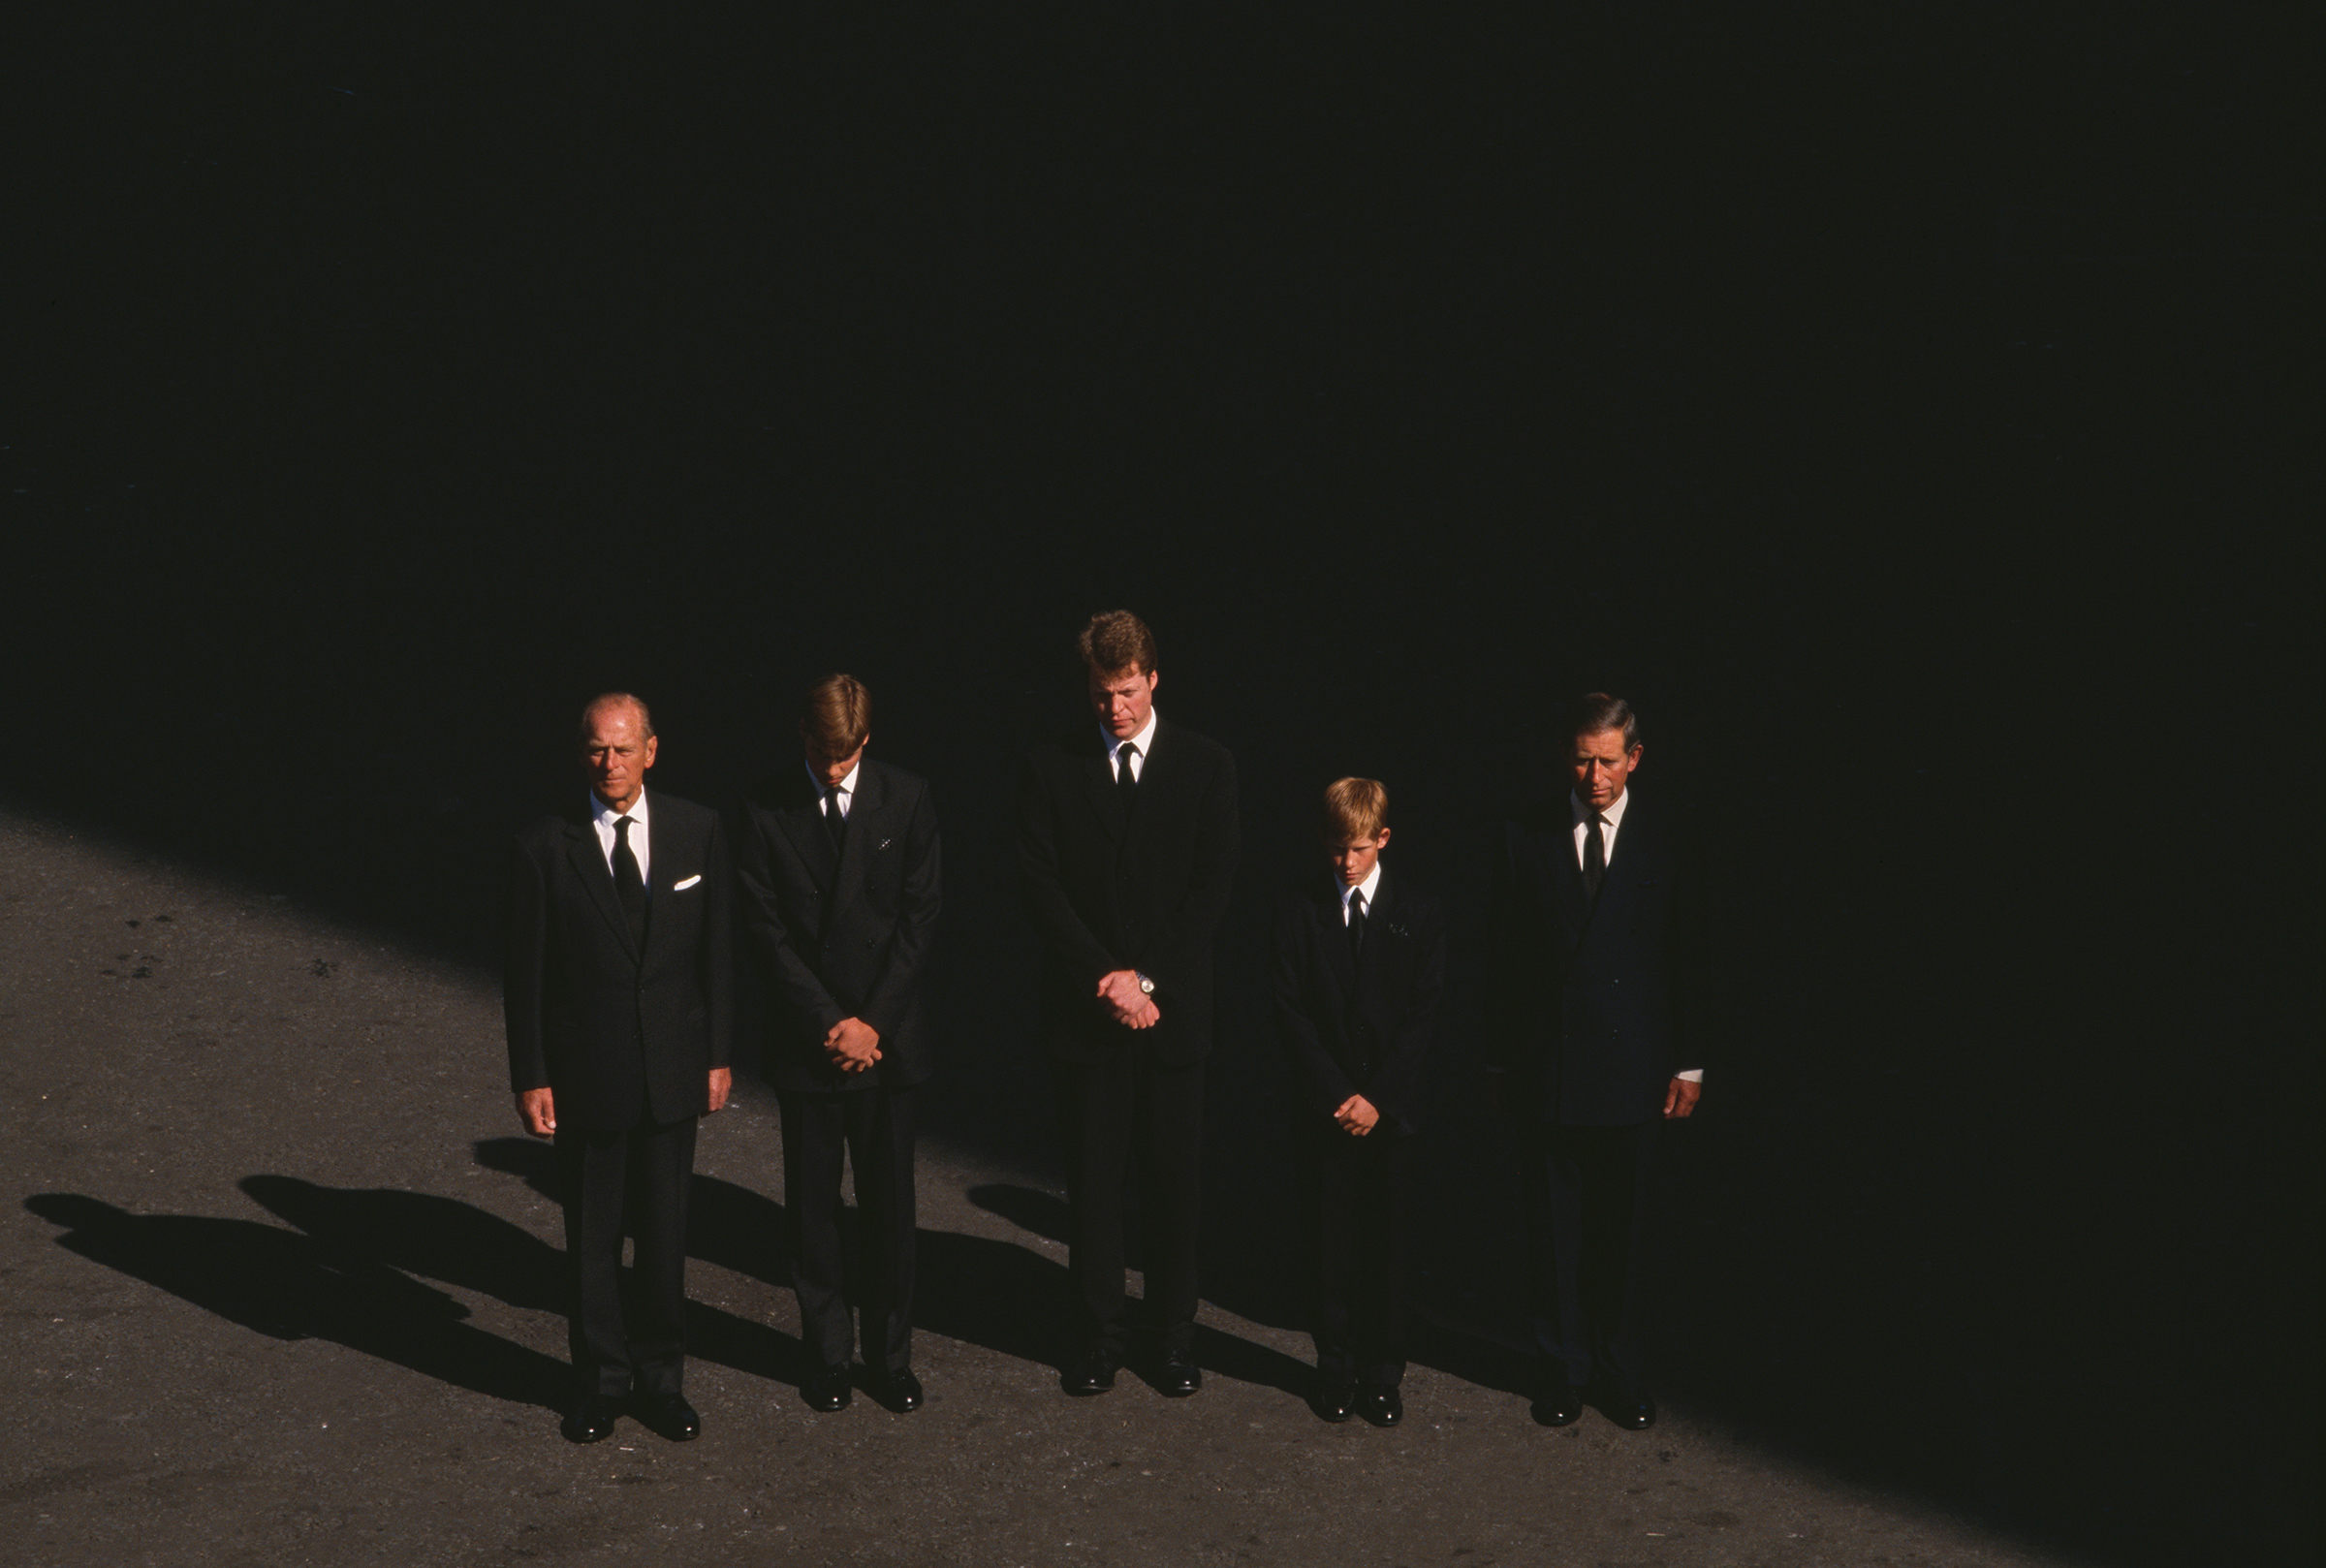 Prince Philip stands with Prince William, Earl Charles Spencer, Prince Harry and Prince Charles at the funeral of Princess Diana, on Sept. 6, 1997.